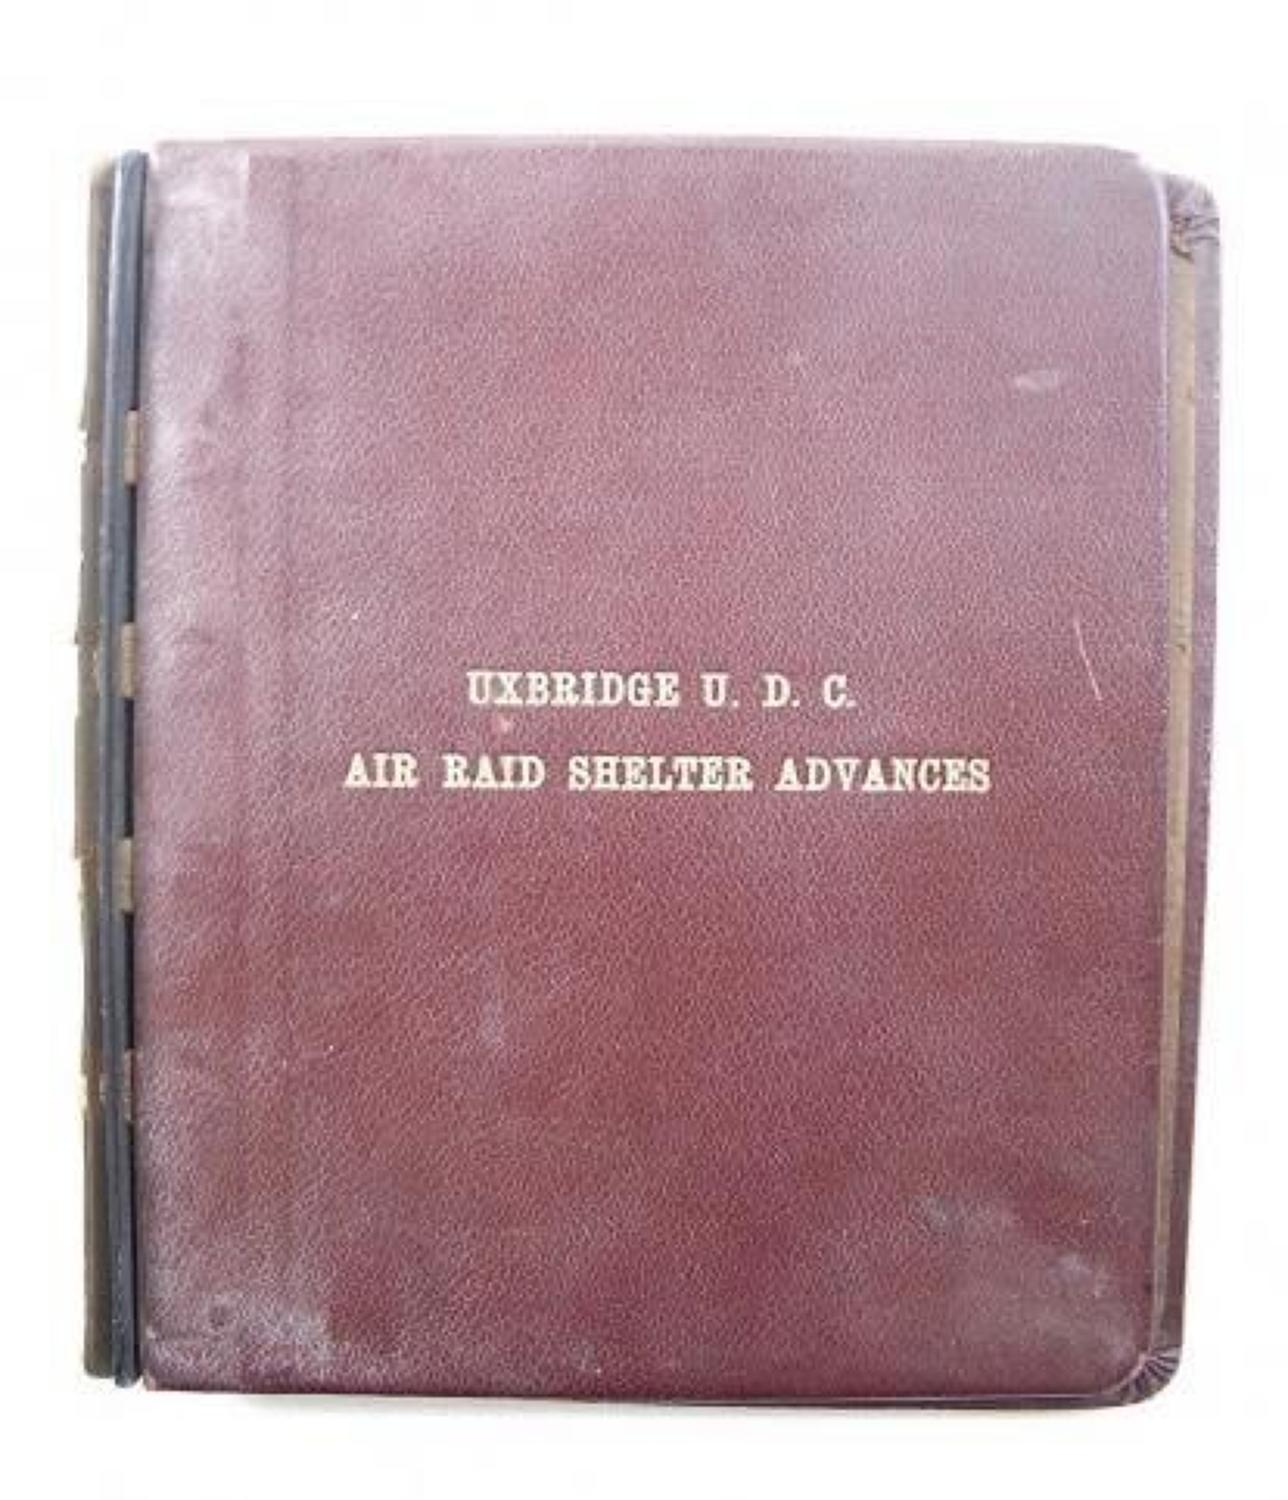 WW2 Uxbridge Urban District Council Air Raid Shelter Advances Folder C